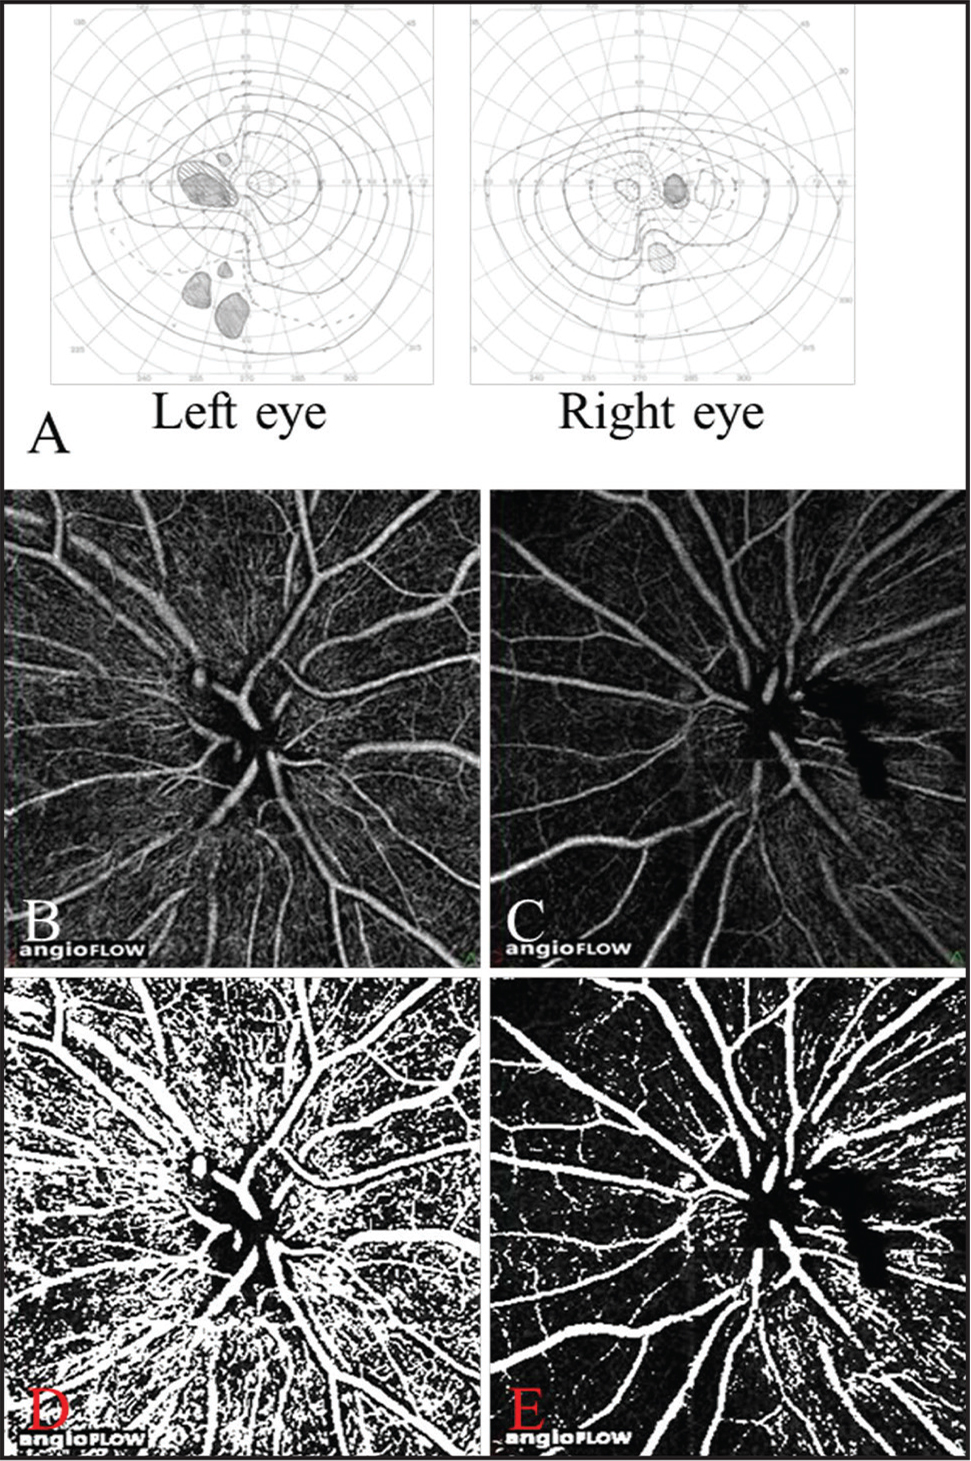 Visual field (VF) findings and optical coherence tomography (OCT) angiograms in Case 2. A 67-year-old female patient with craniopharyngioma. The patient underwent tumor resection 12 months prior to this study. VF findings of Goldmann perimetry (A). Temporal VF defects were detected in both eyes and the VF defect in the left eye was more severe than the right eye. OCT angiograms of the disc of the right eye (B) and of the left eye (C). Binarized OCT angiograms of the disc of the right eye (D) and of the left eye (E). The retinal perfusion was especially decreased in the nasal retina corresponding to the quadrants of the VF defects in the left eye.